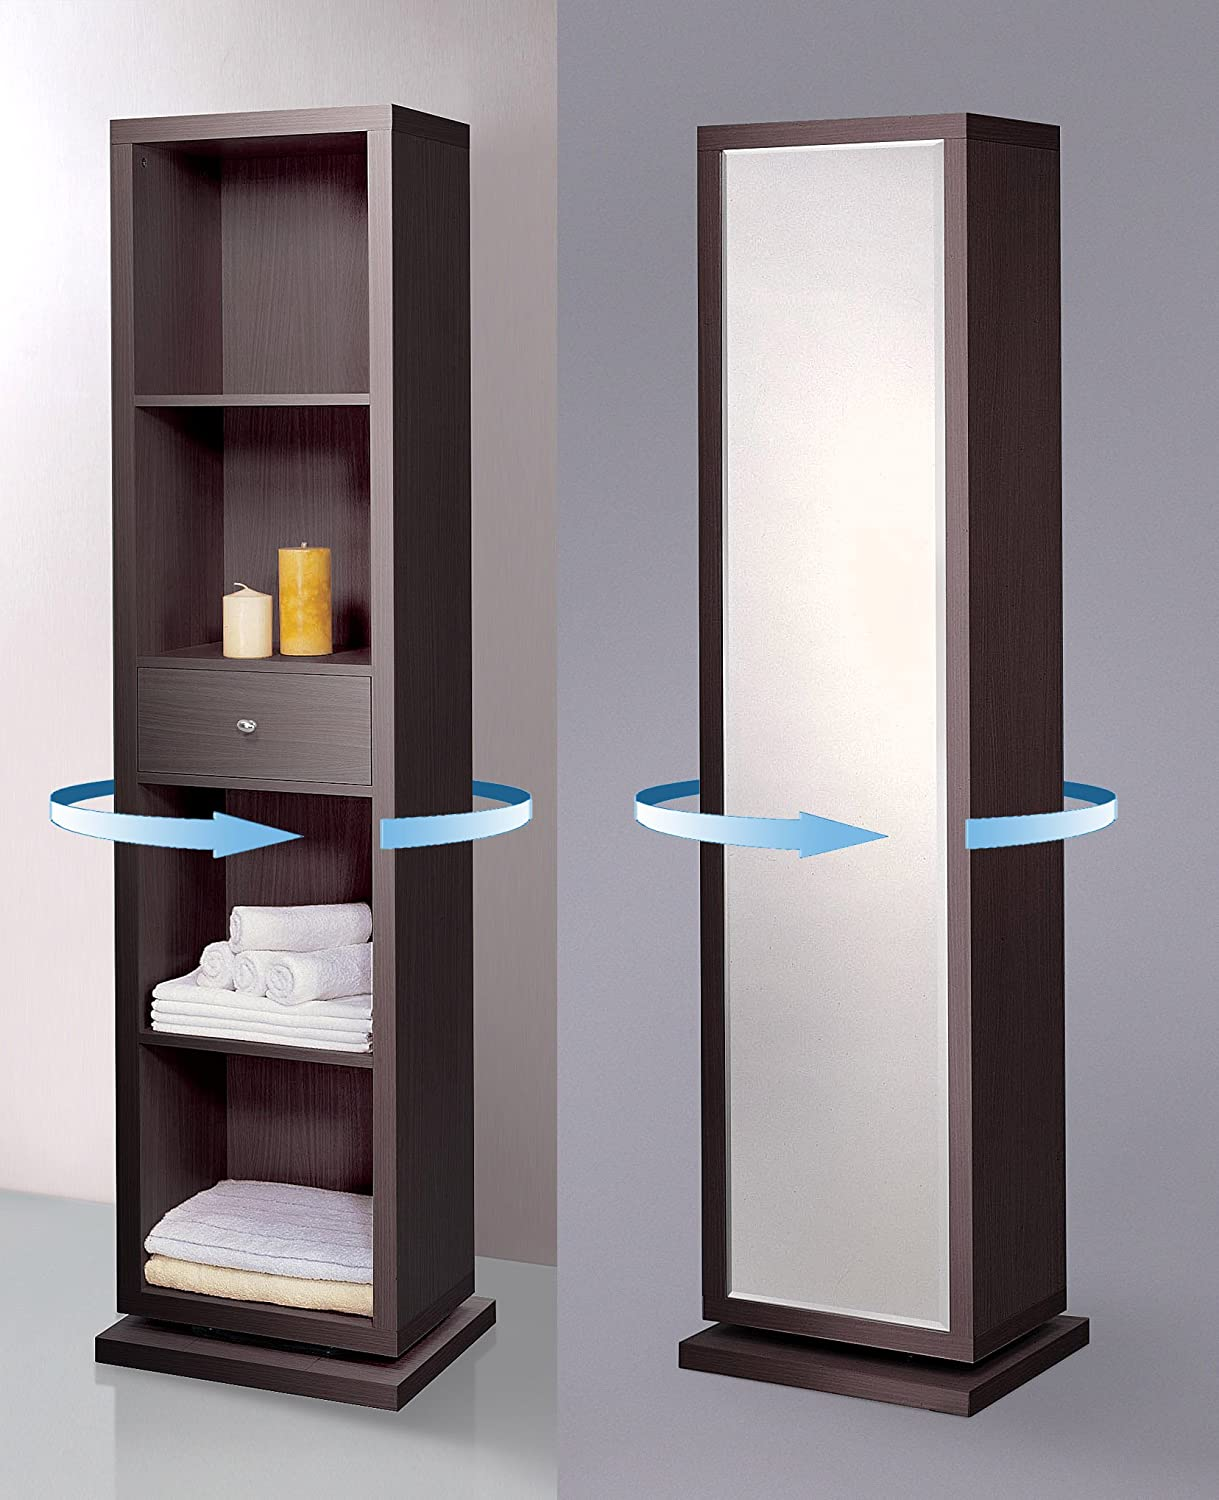 Artiva USA Bella, Home Deluxe, Accent, Sturdy Rotating System, Free-Standing Mirror and Swivel Cabinet Organizer with 4 Shelves and 1 Drawer, 71-Inch, Merlot